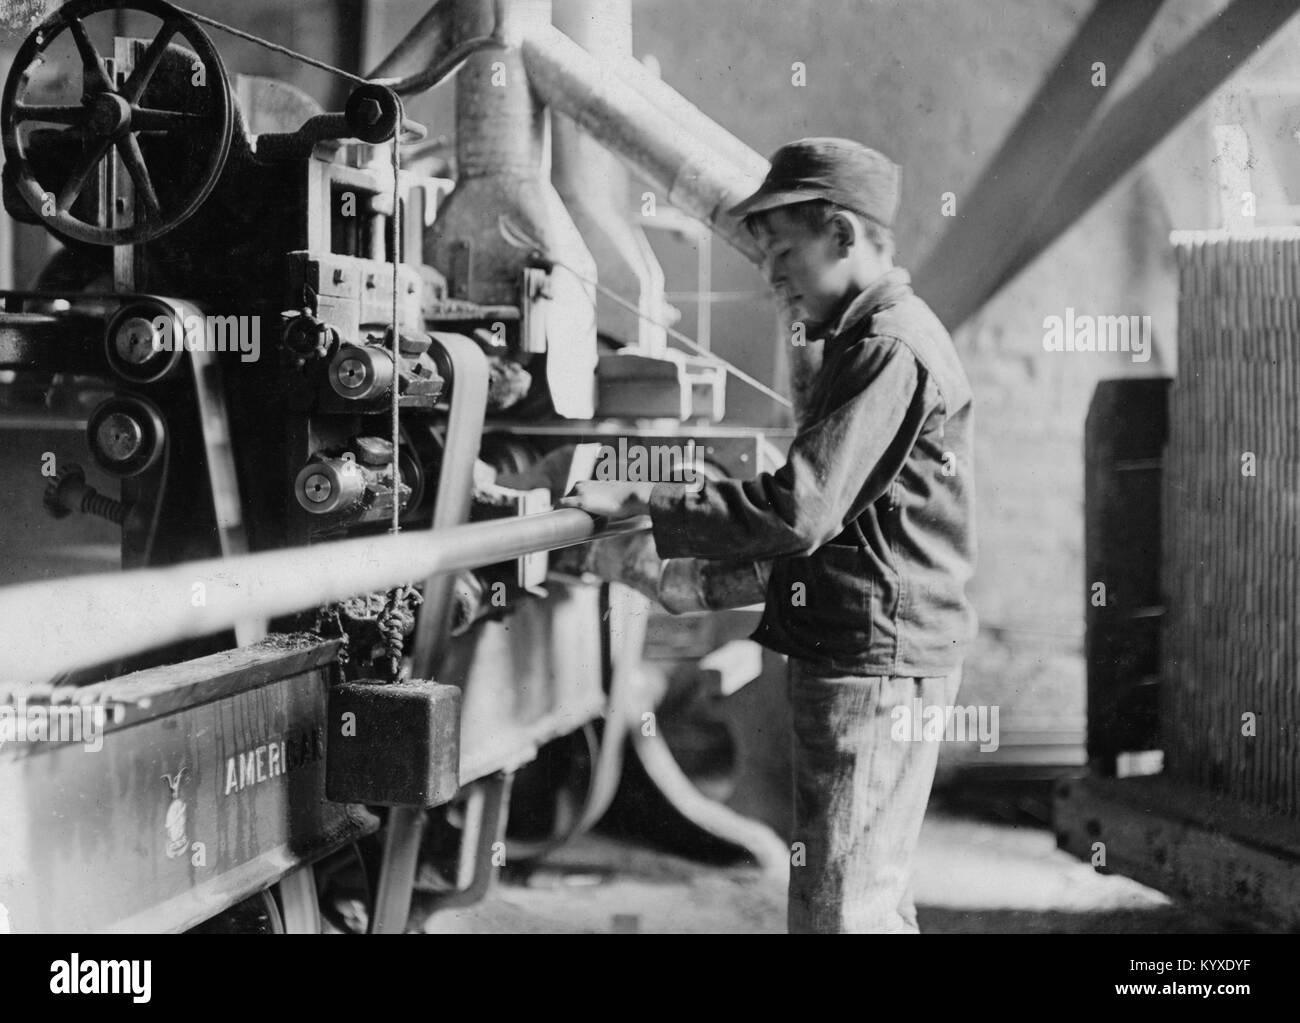 Indiana Mfg. Co., Boy taking boards away from 'double cut-off' machine. - Stock Image